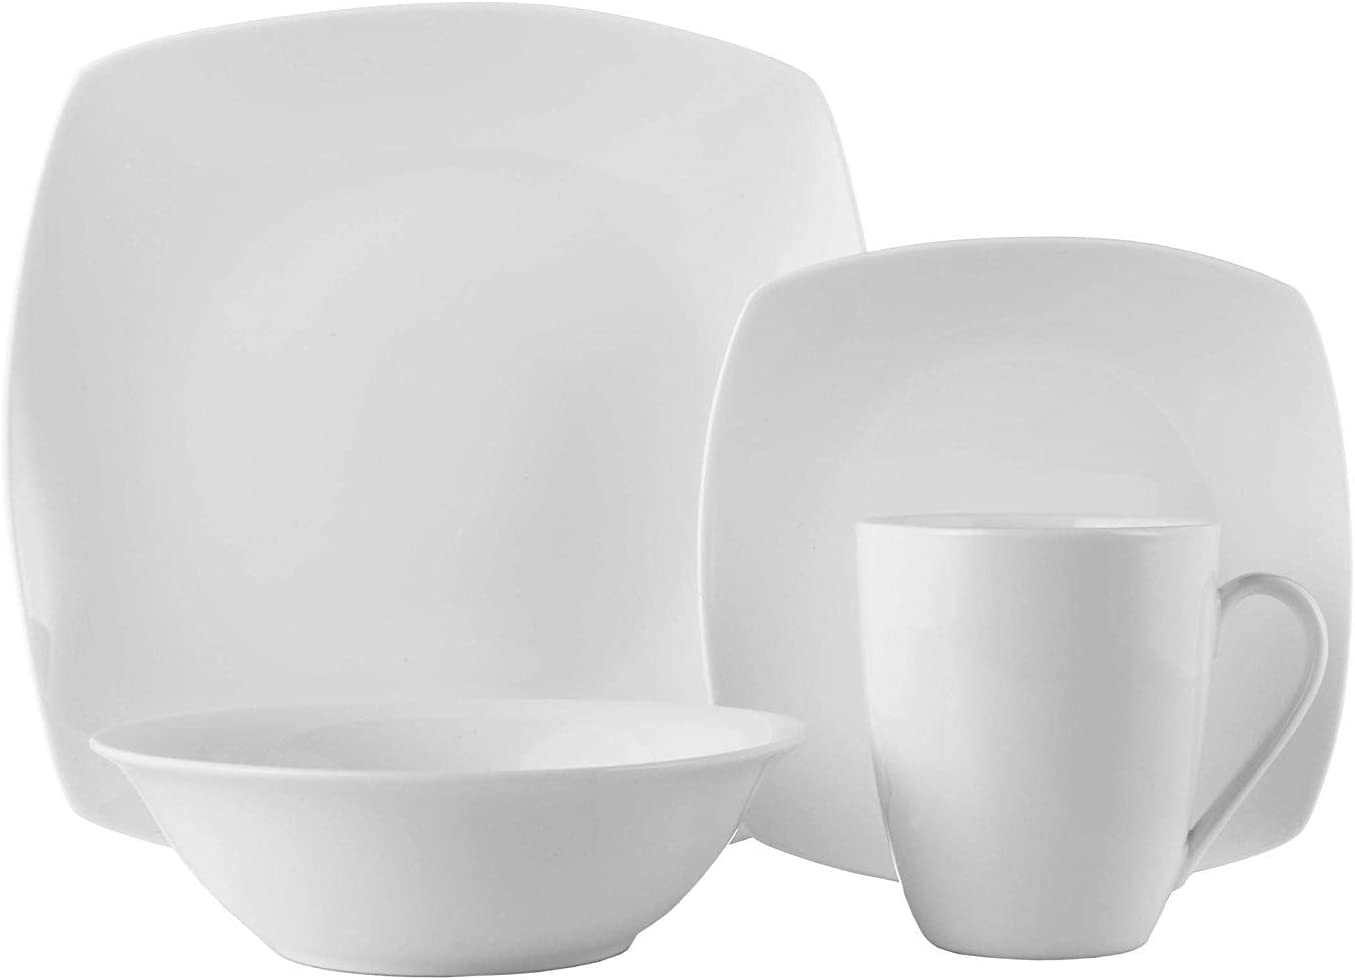 Souelle 32-piece Fine Bone China Dinnerware Set | White Kelsey Design – Microwave and Dishwasher Safe – Service for 8 – Includes Dinner Plates, Salad Plates, Bowls, and Cups